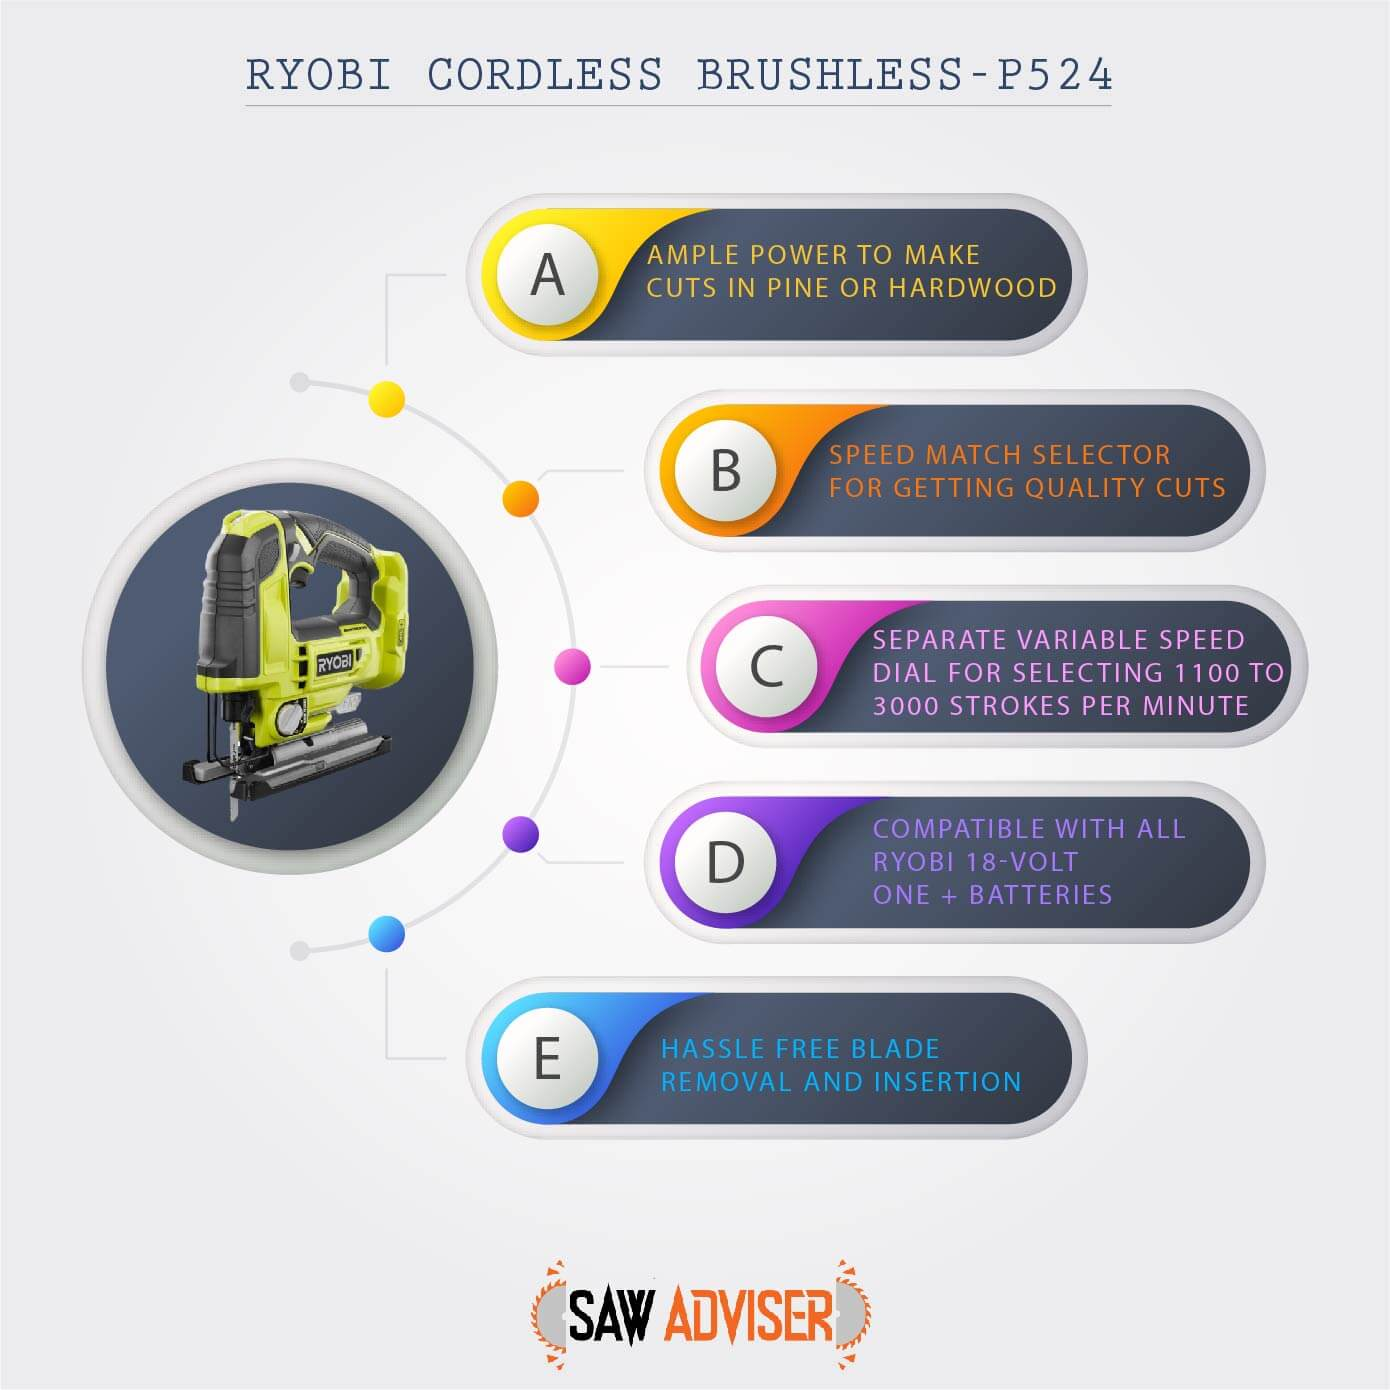 inforgrpahic for prominent features of RYOBI p524